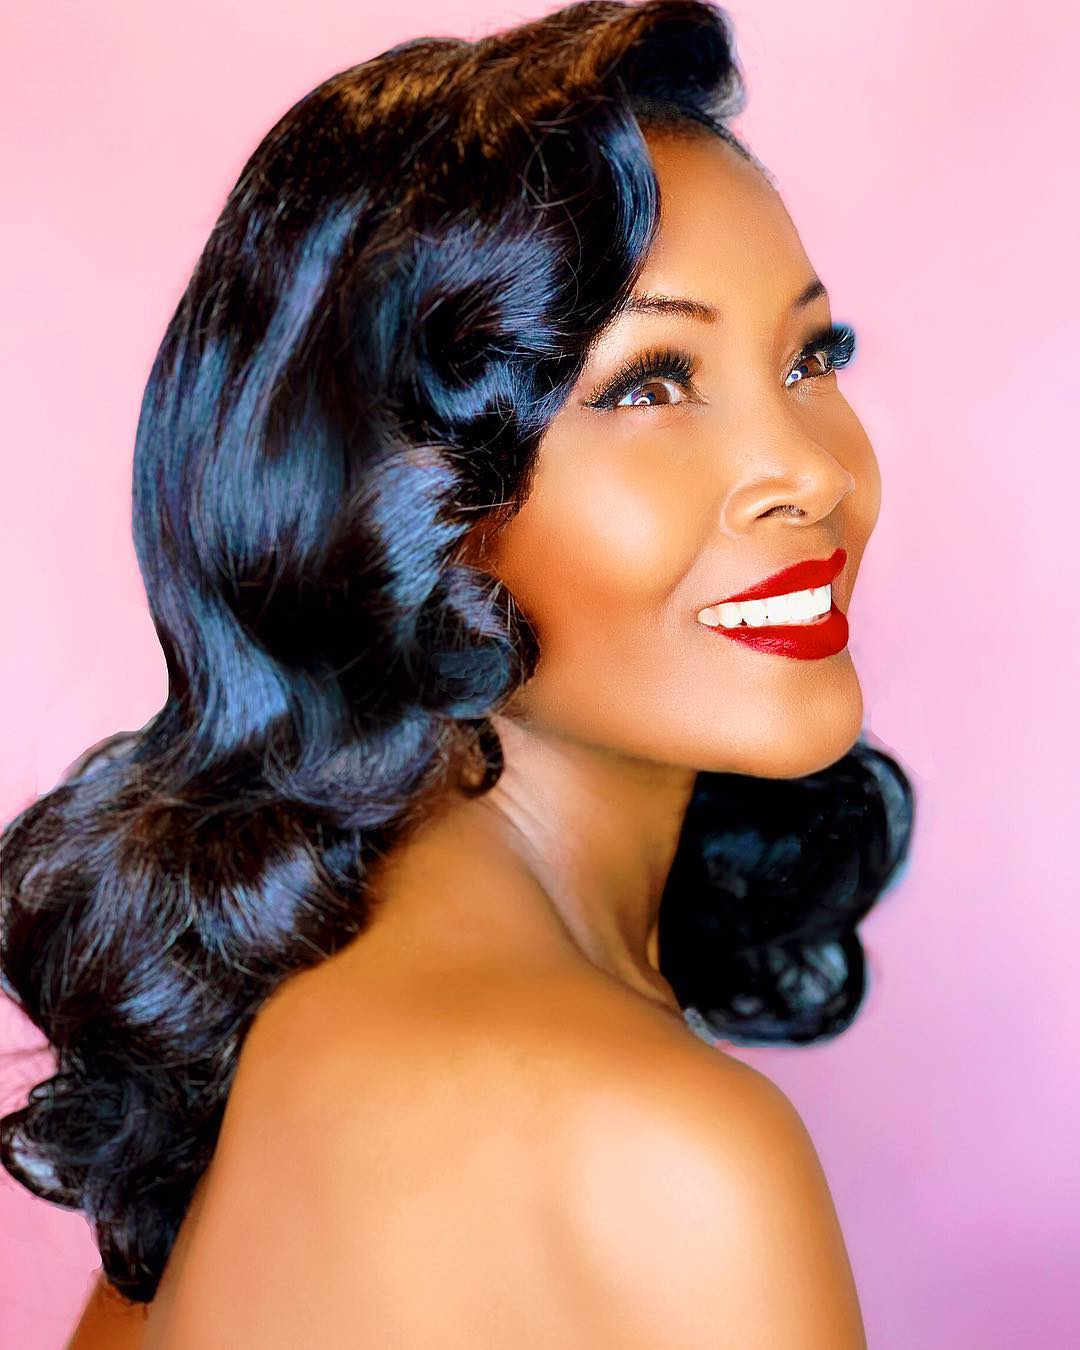 it was my goal to show that black women that love pinup